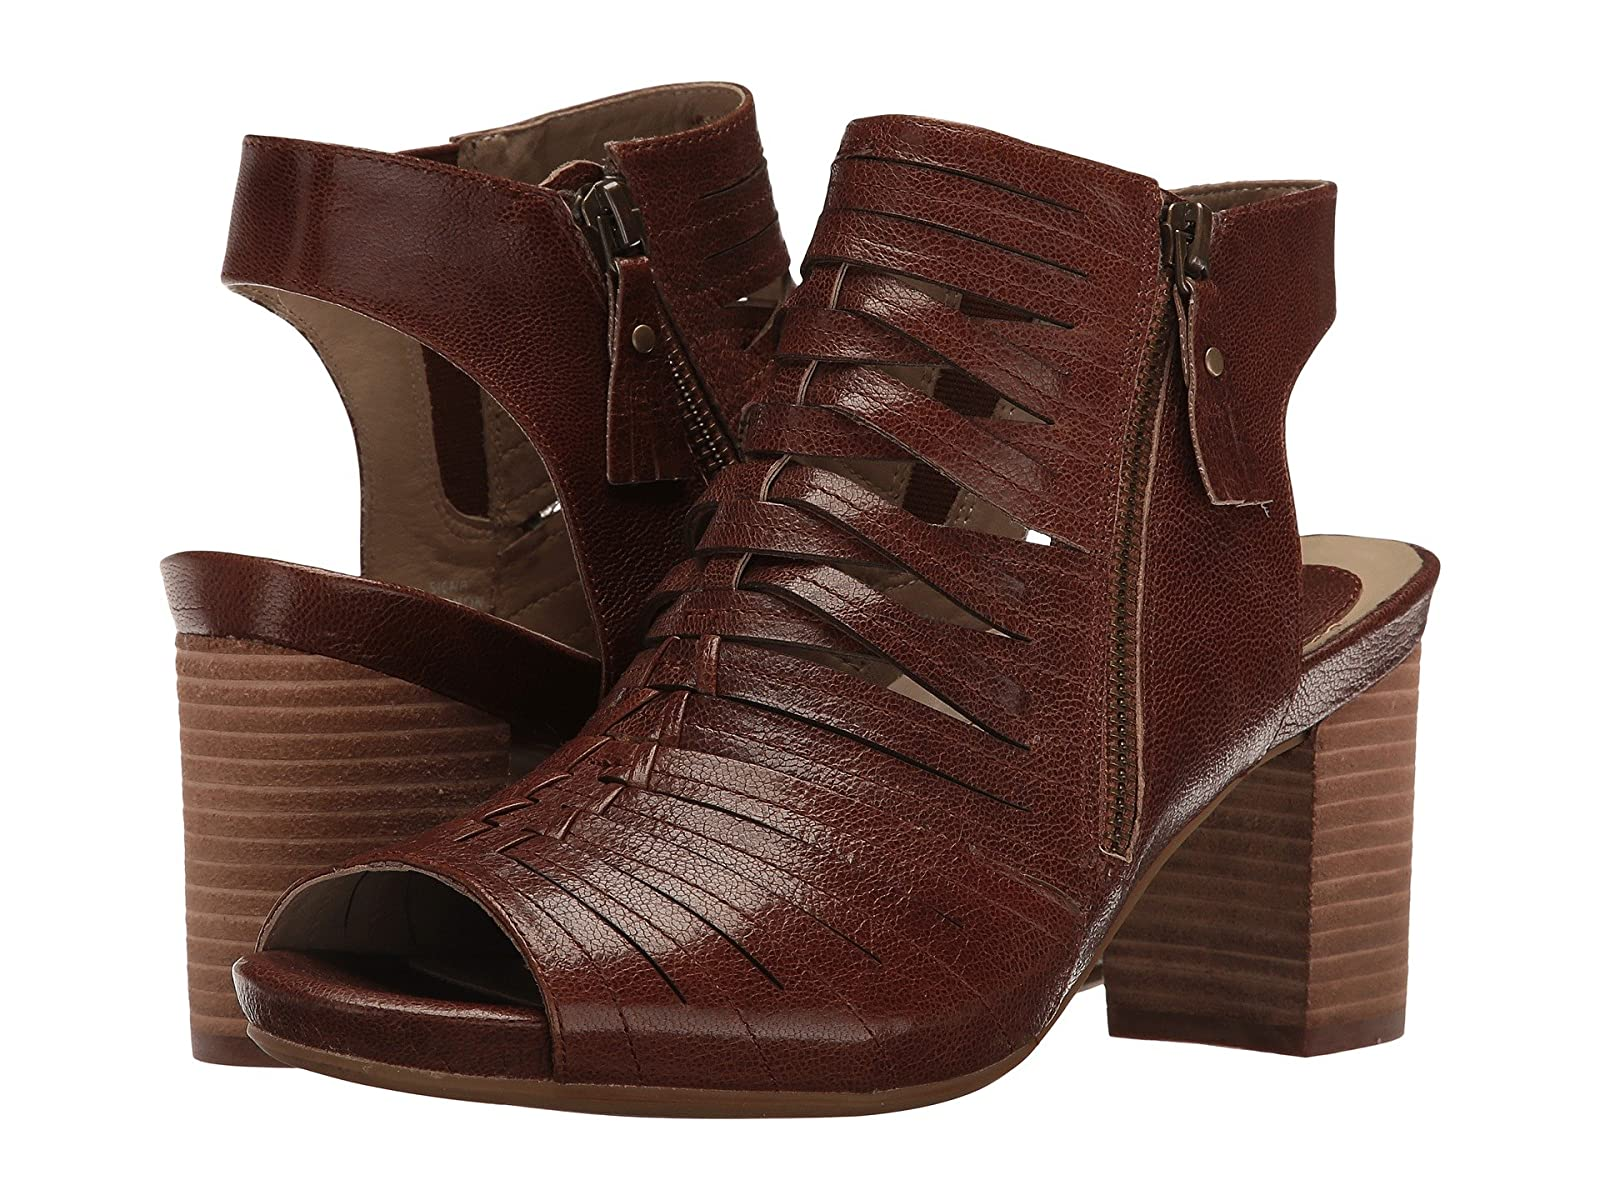 Earth Siena EarthiesCheap and distinctive eye-catching shoes